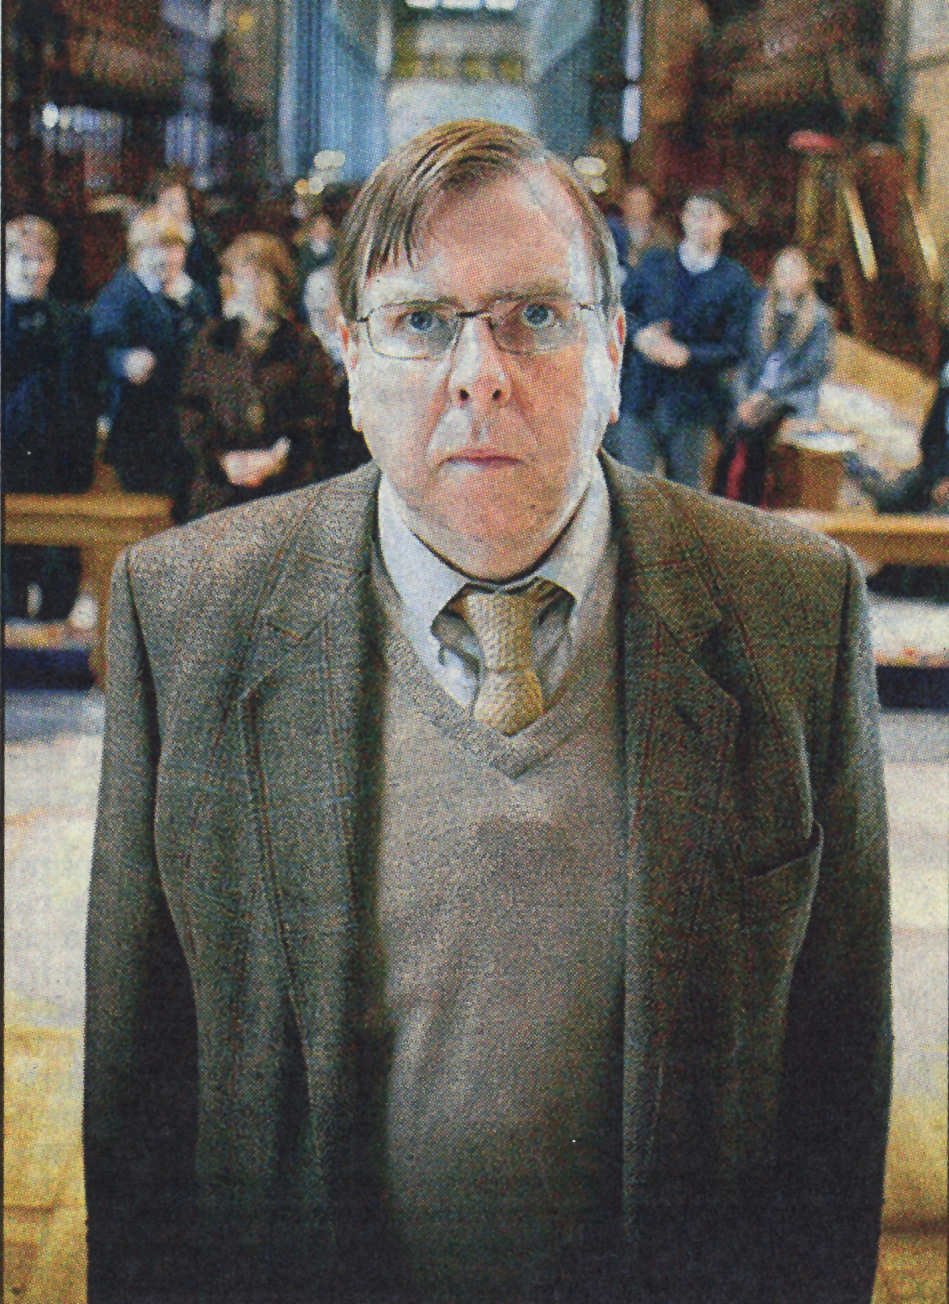 My first commission for television was the 90-minute drama Mr Harvey Lights A Candle. It tells the story of a school trip to Salisbury Cathedral that goes wrong. It starred Timothy Spall, Celia Imre and Nathalie Press.